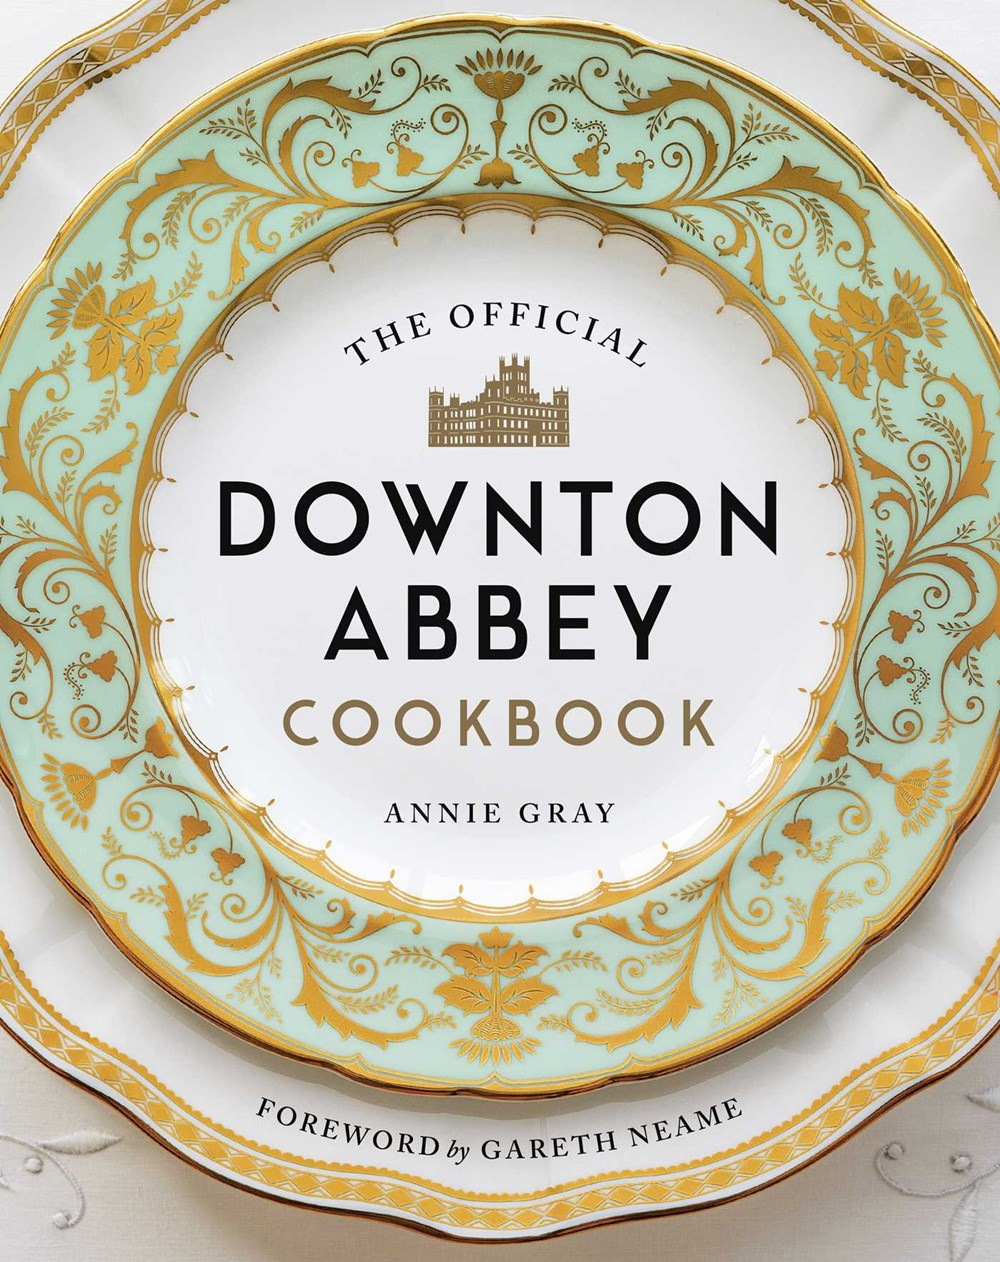 The Official Downton Abbey Cookbook, by Annie Gray (2019)